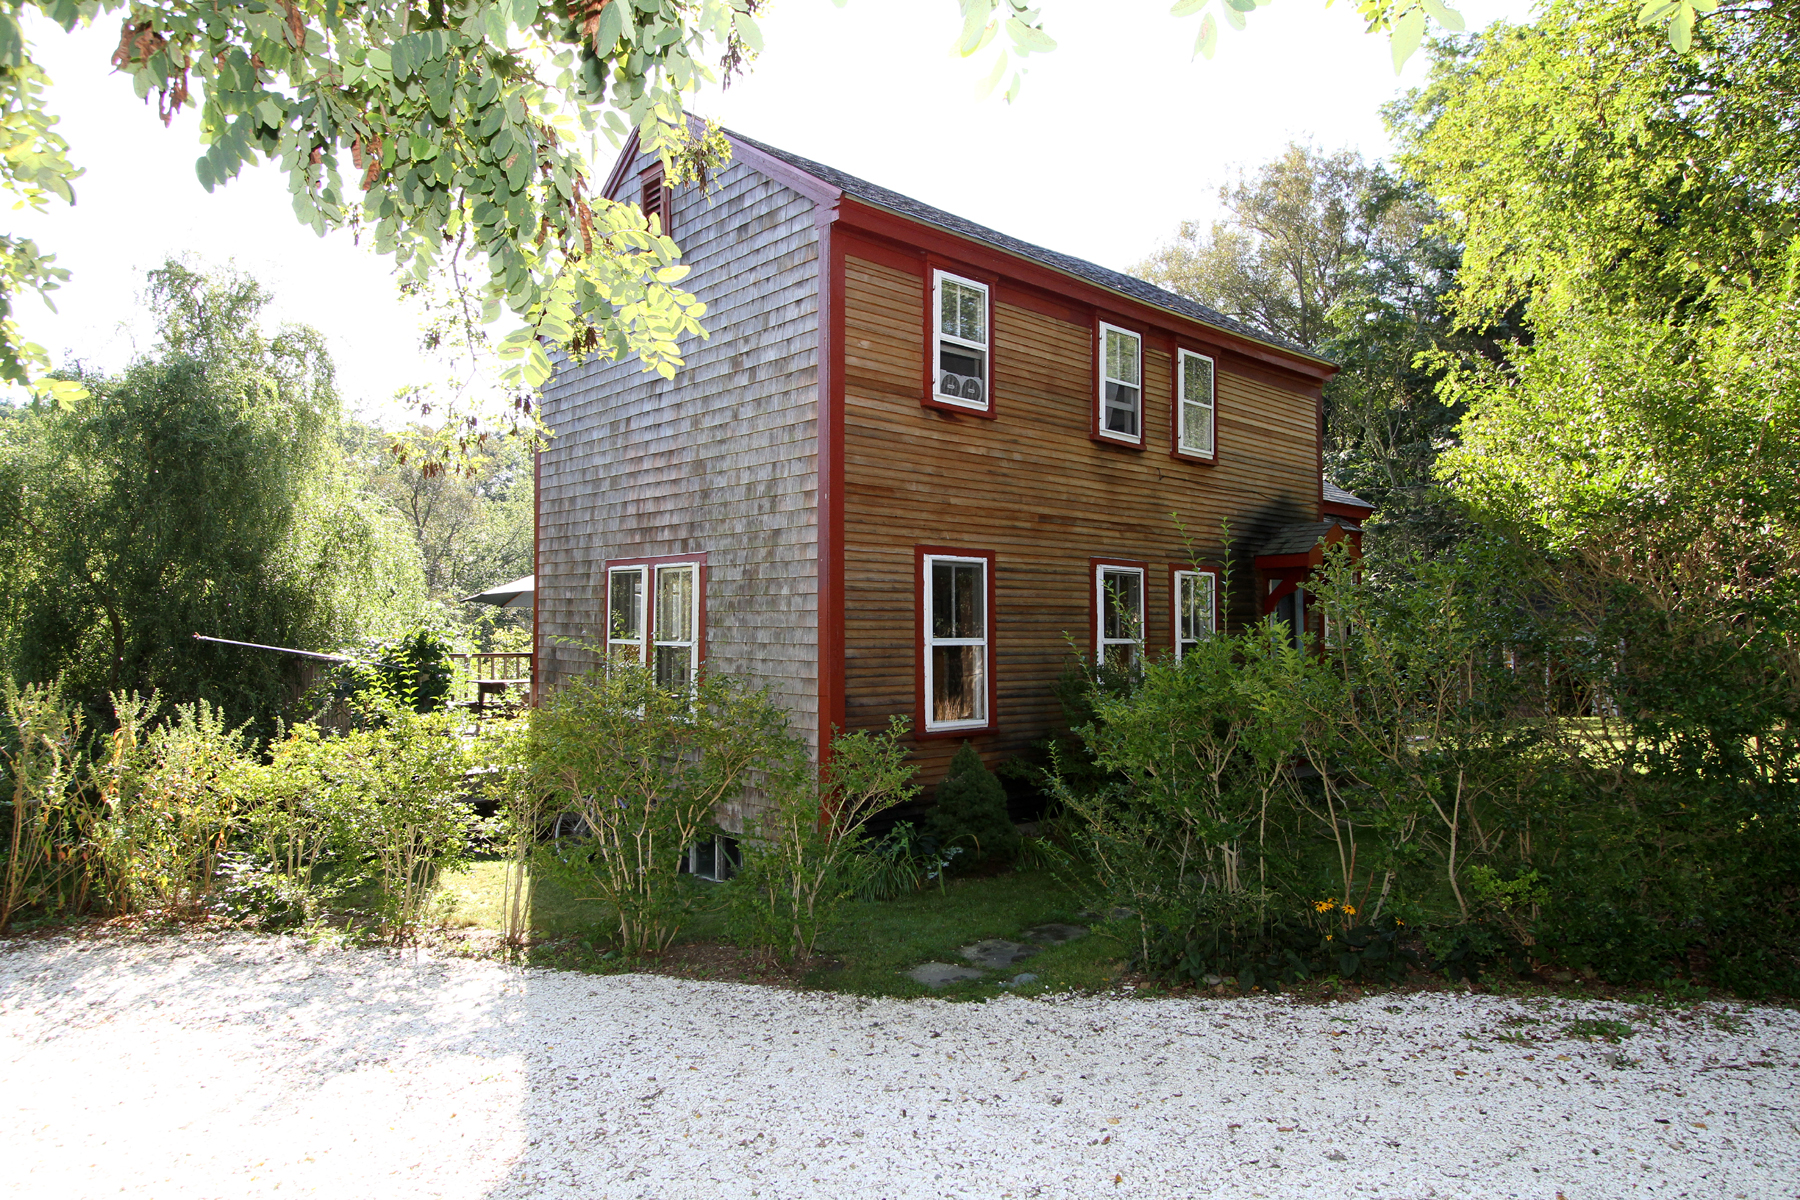 Single Family Home for Sale at IN-TOWN LOCATION 180 Briar Lane Wellfleet, Massachusetts, 02667 United States